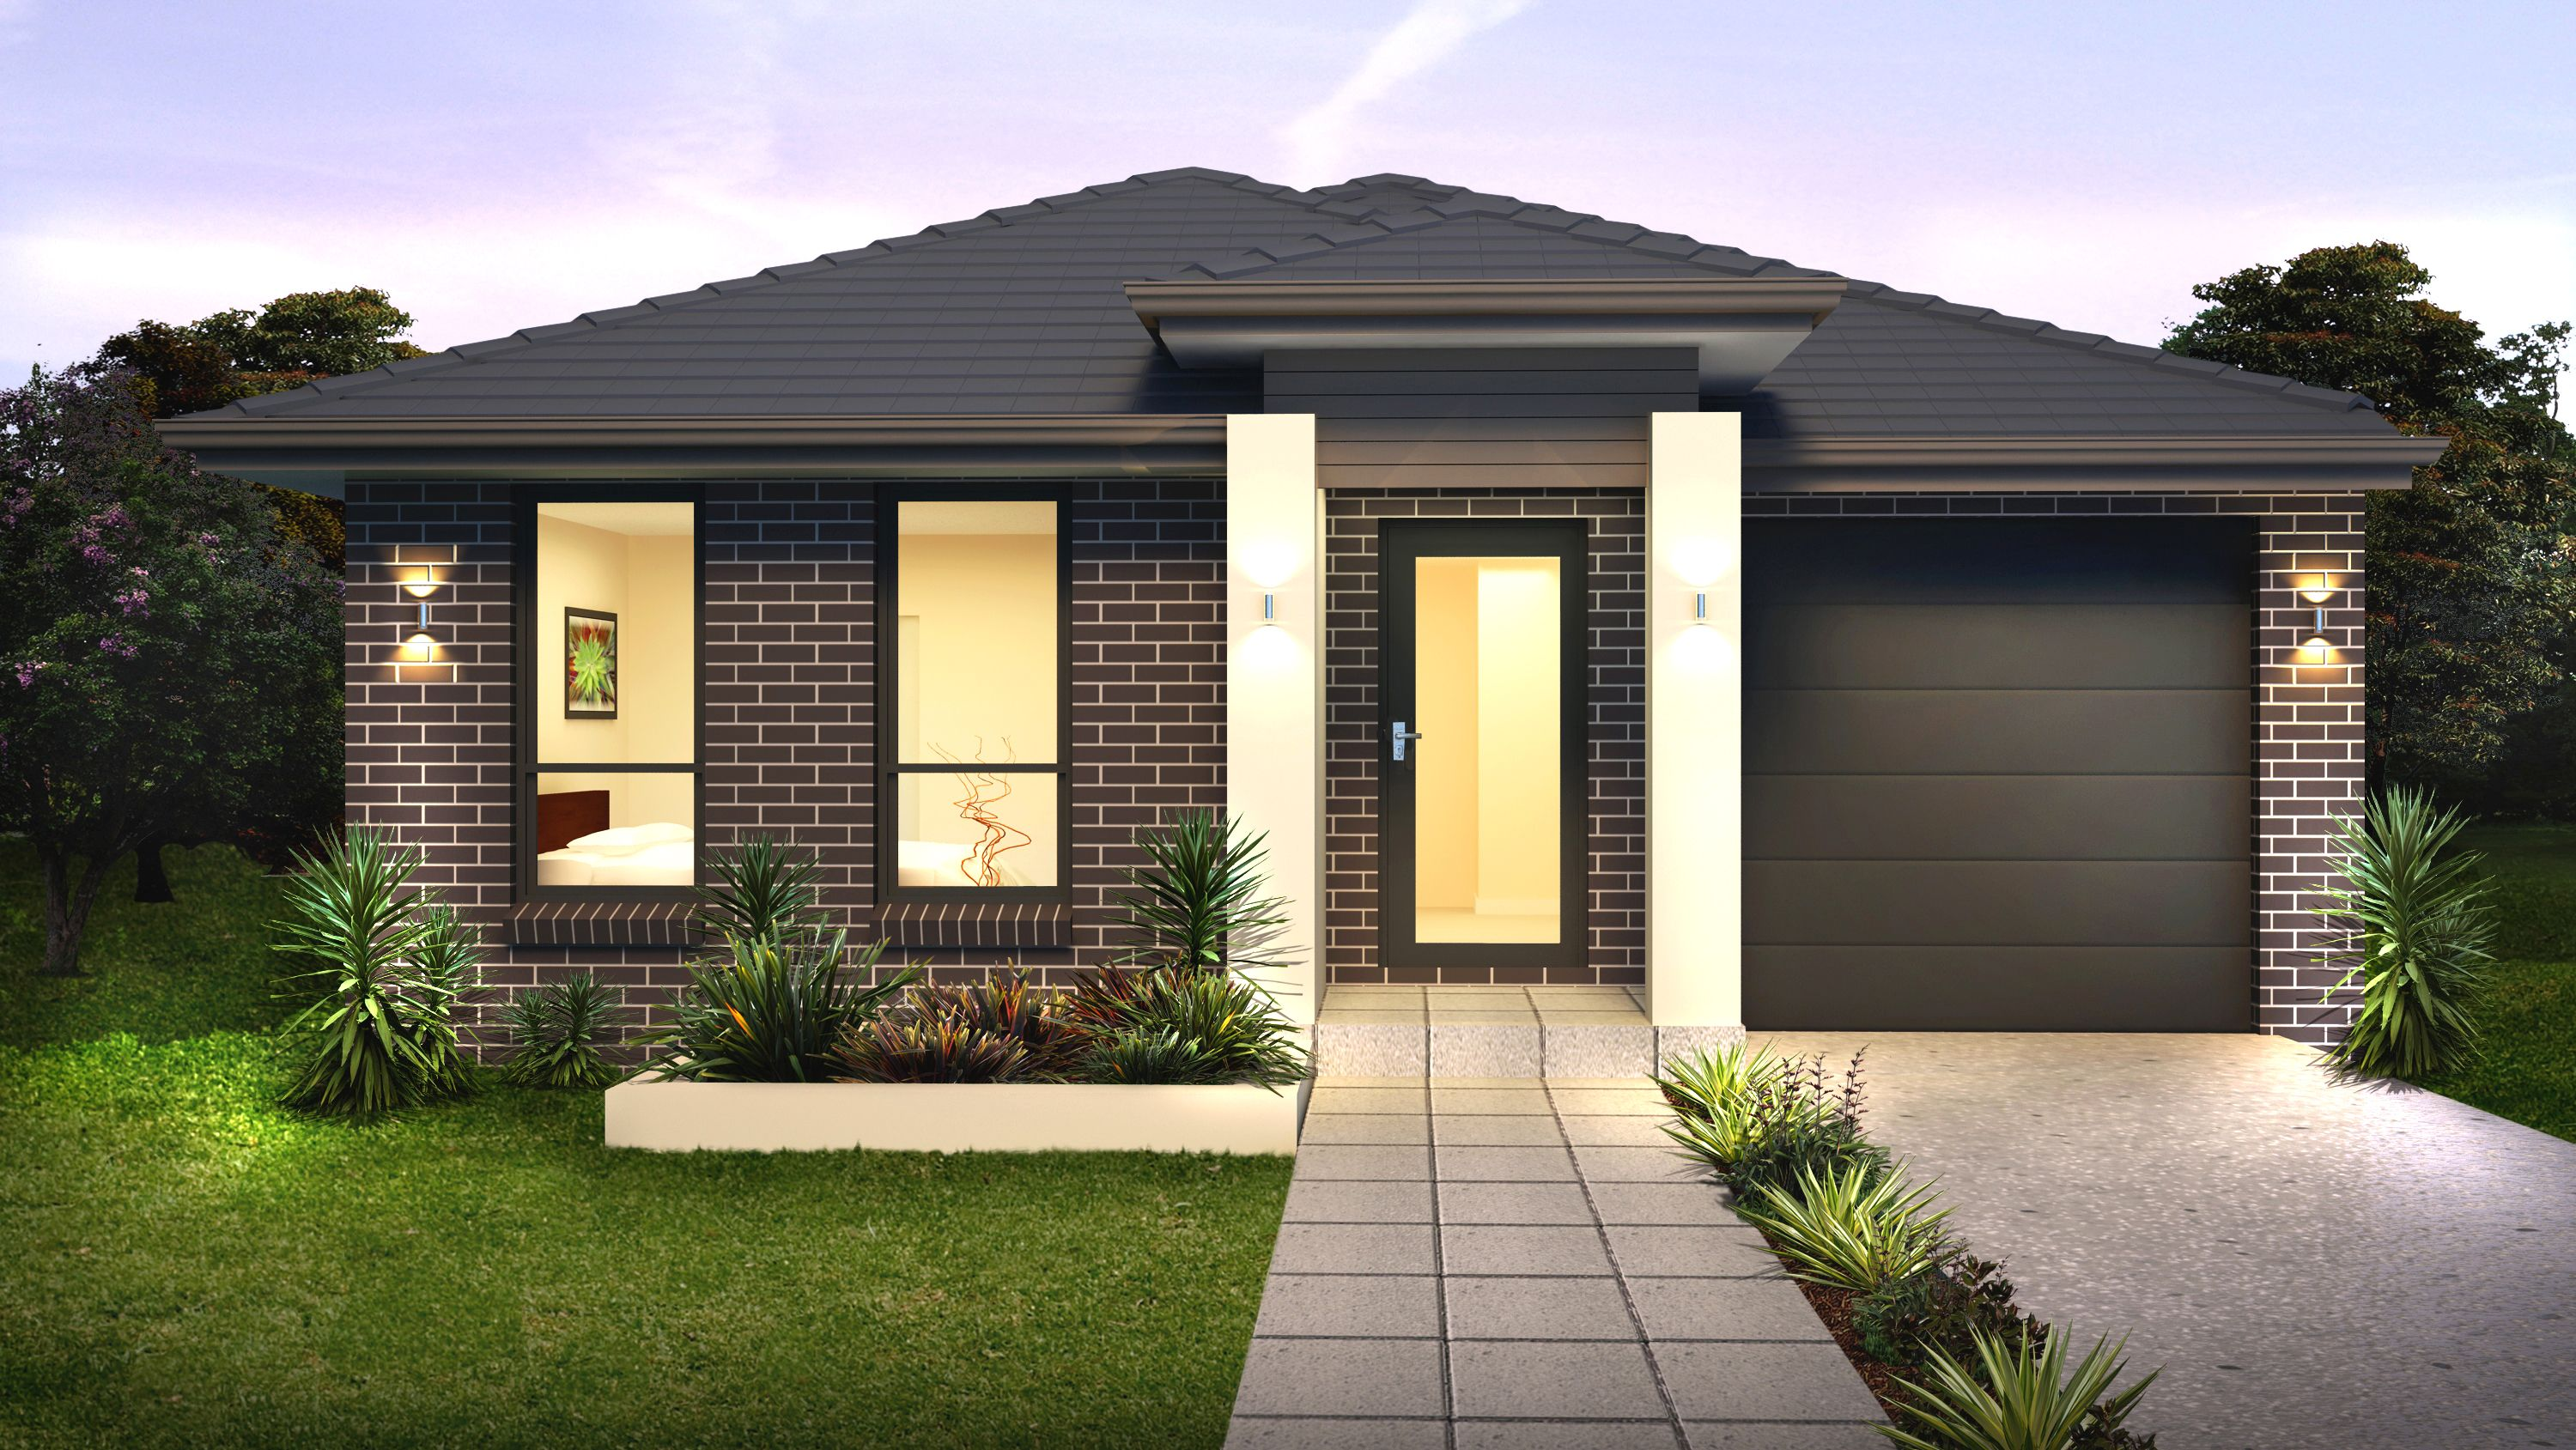 Single storey house design the metro smart practical and modern almost like the perfect man including 3 bedrooms all with robes ensuite and main